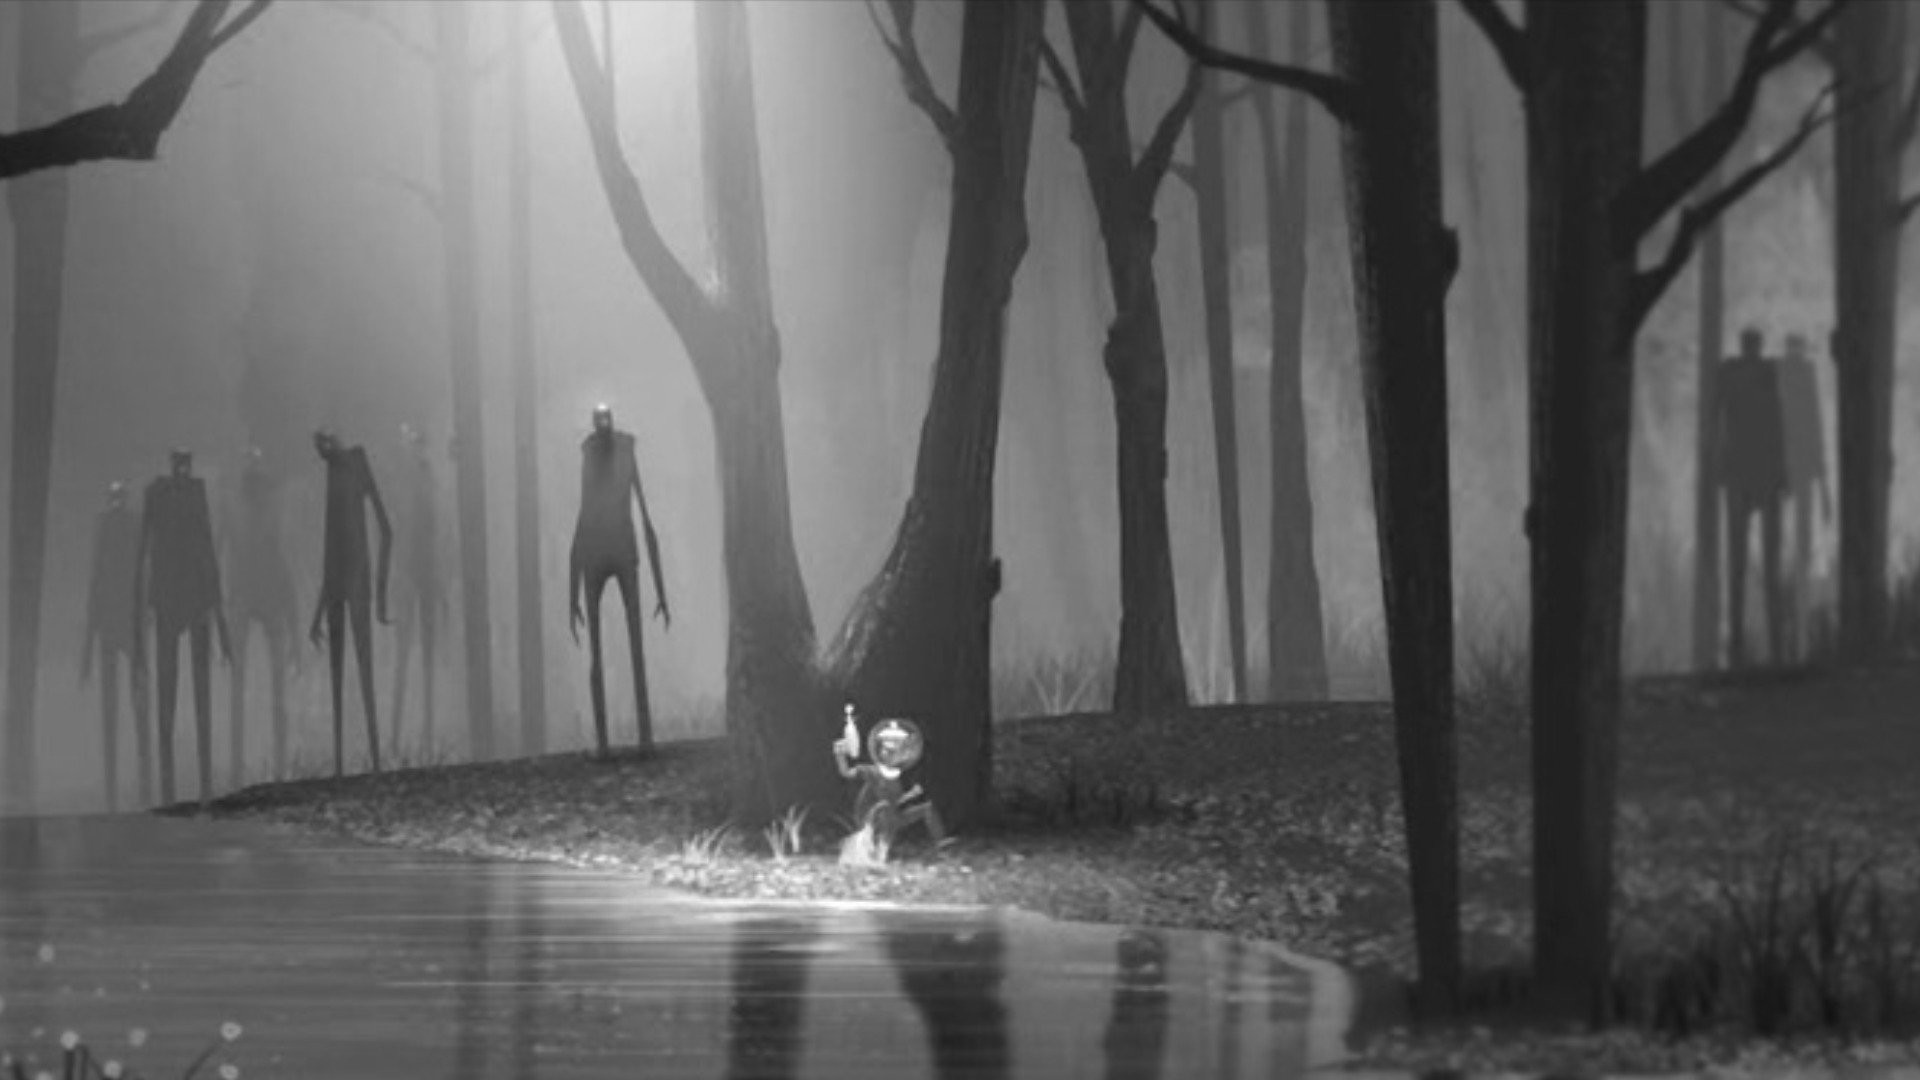 Res: 1920x1080, forest, dark macbook, chase, kid, hd artworks, zombies, alien, child,  iphone,art, horror, peace, fantasy,scifi Wallpaper HD